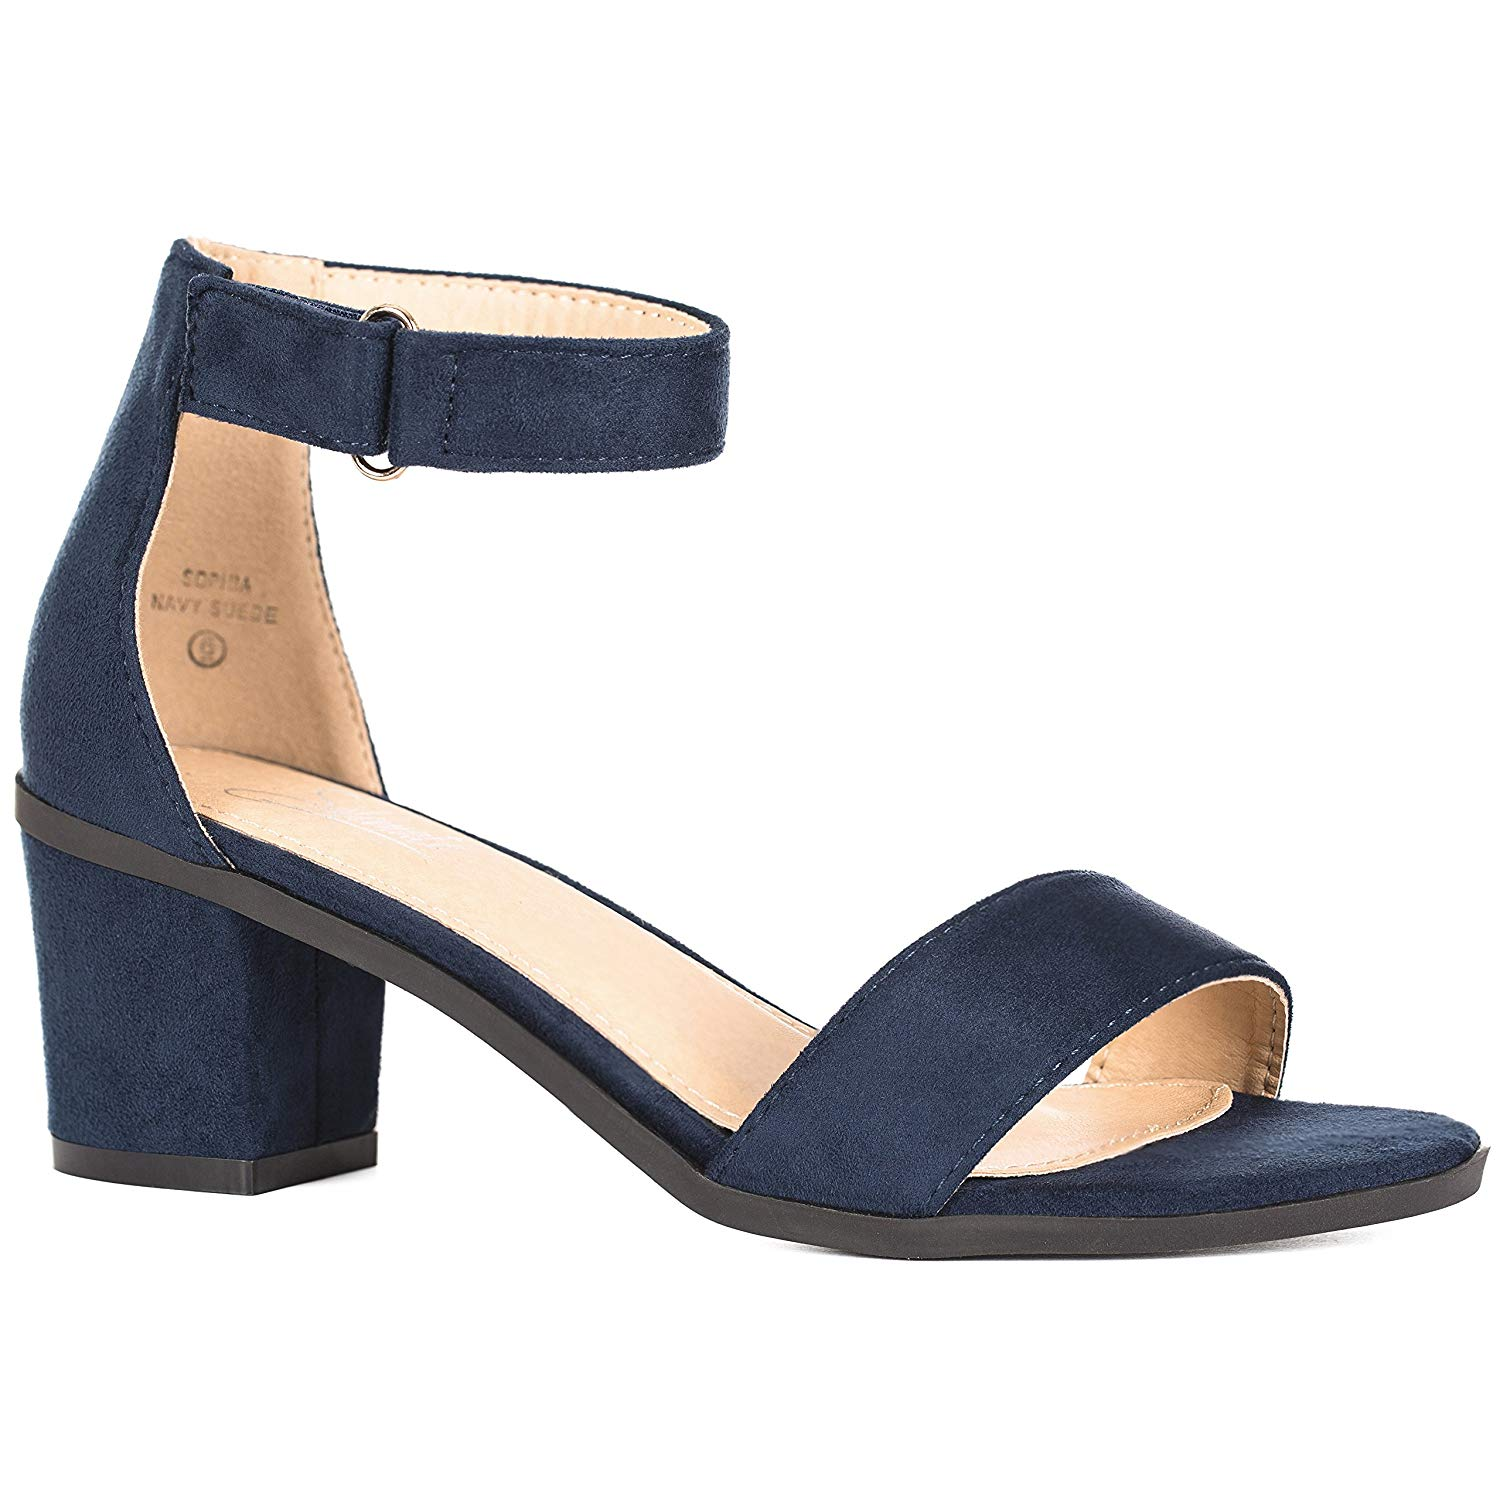 e05dda93581 Get Quotations · Women s Ankle Strap Chunky High Heels – Comfortable Open  Toe Strap Sandal – Evening